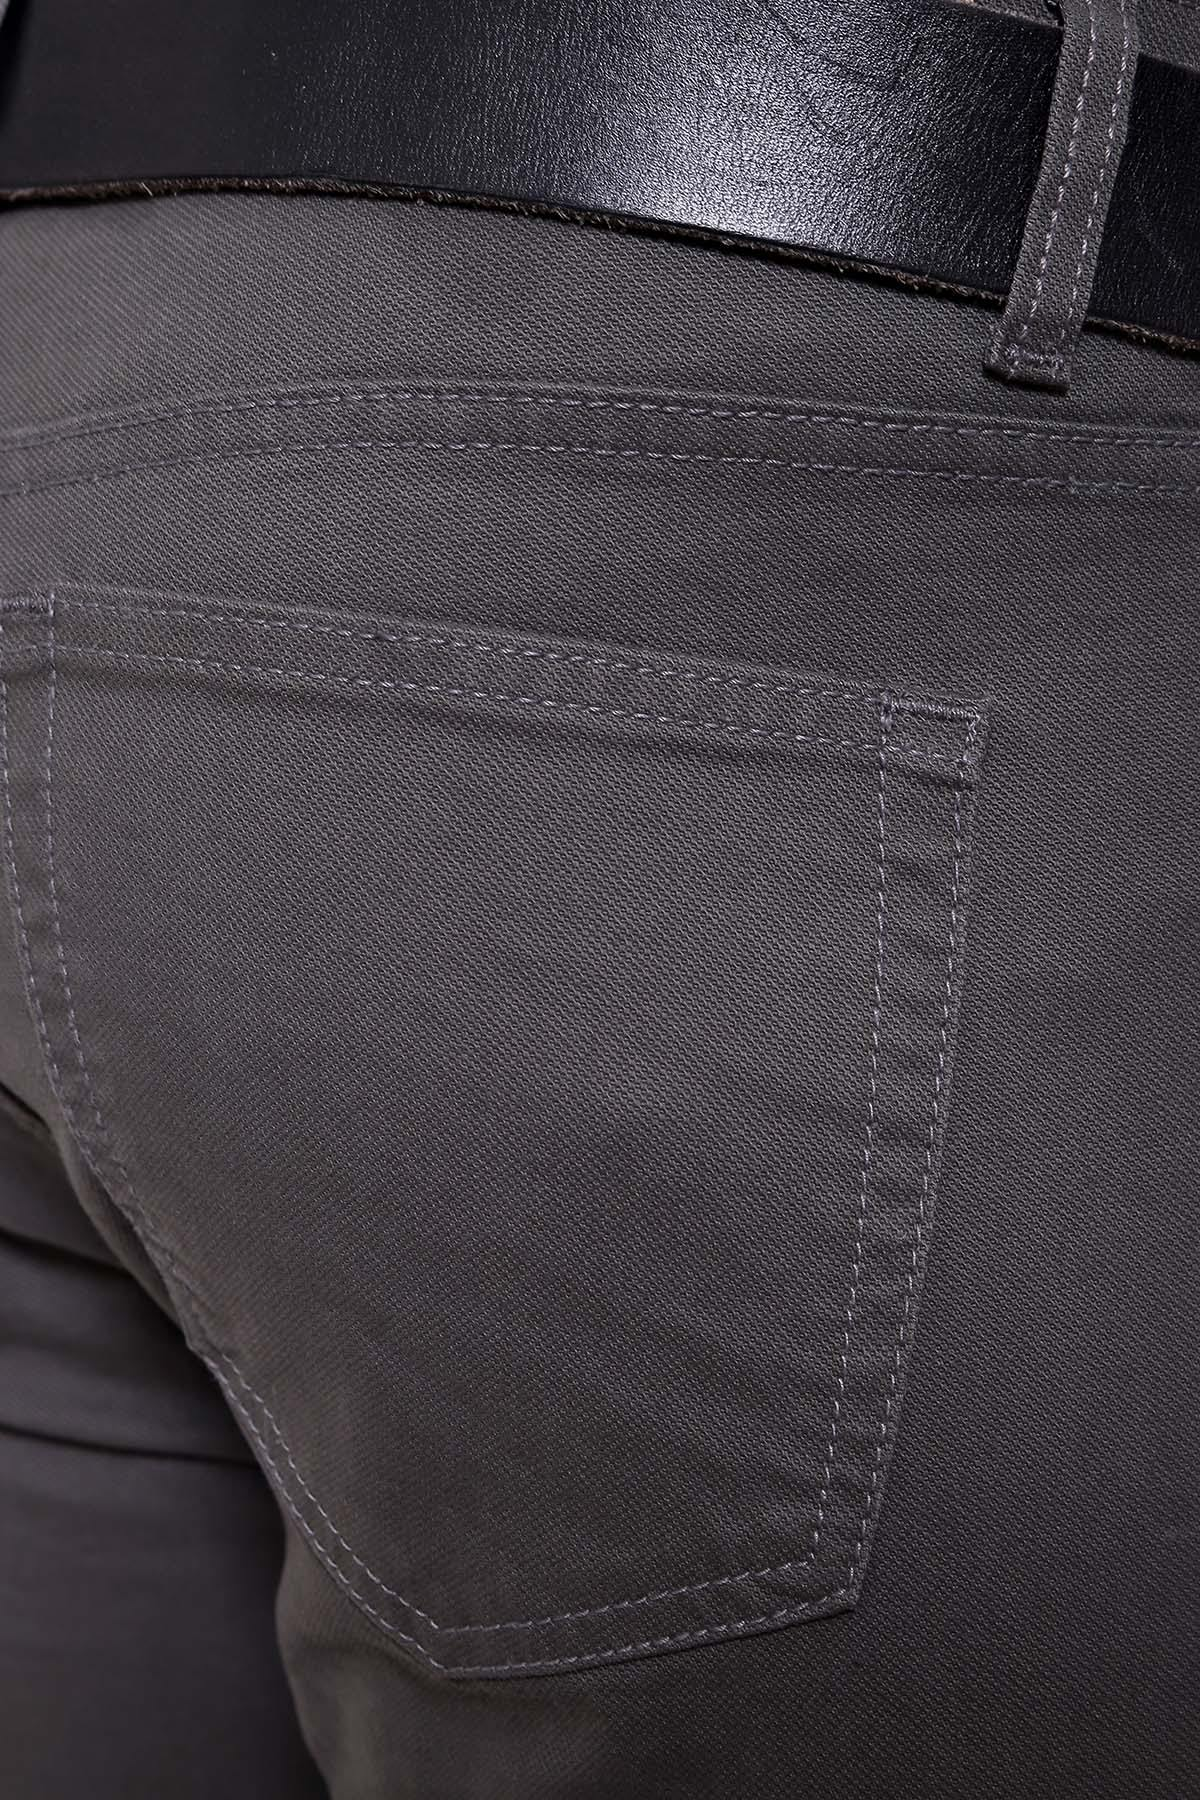 C PANT 5 POCKET SLIM FIT OLIVE - Charcoal - CASUAL PANTS -